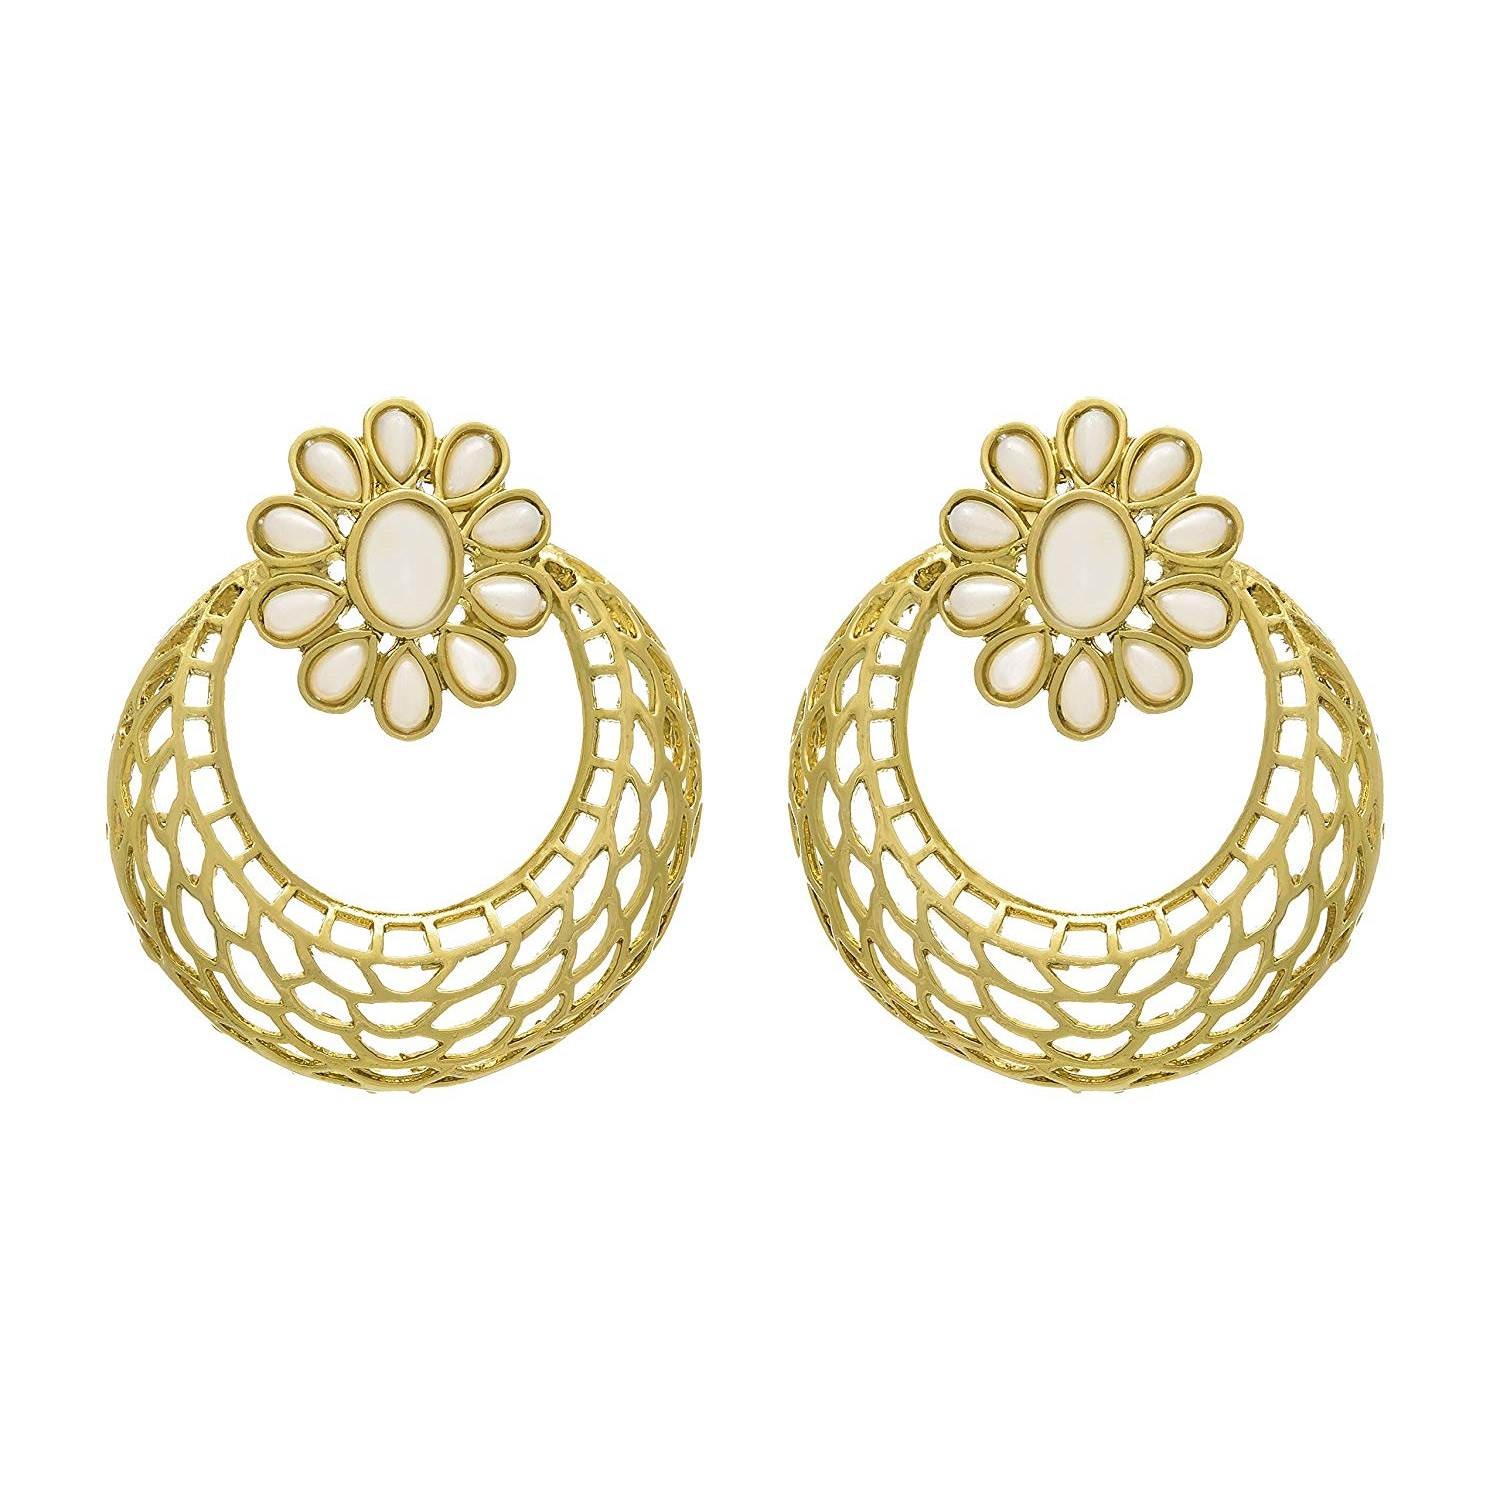 JFL - Fusion Ethnic Chand Bali Designer Earrings studded with Pearls and Intricate Jali Work for Women and Girls